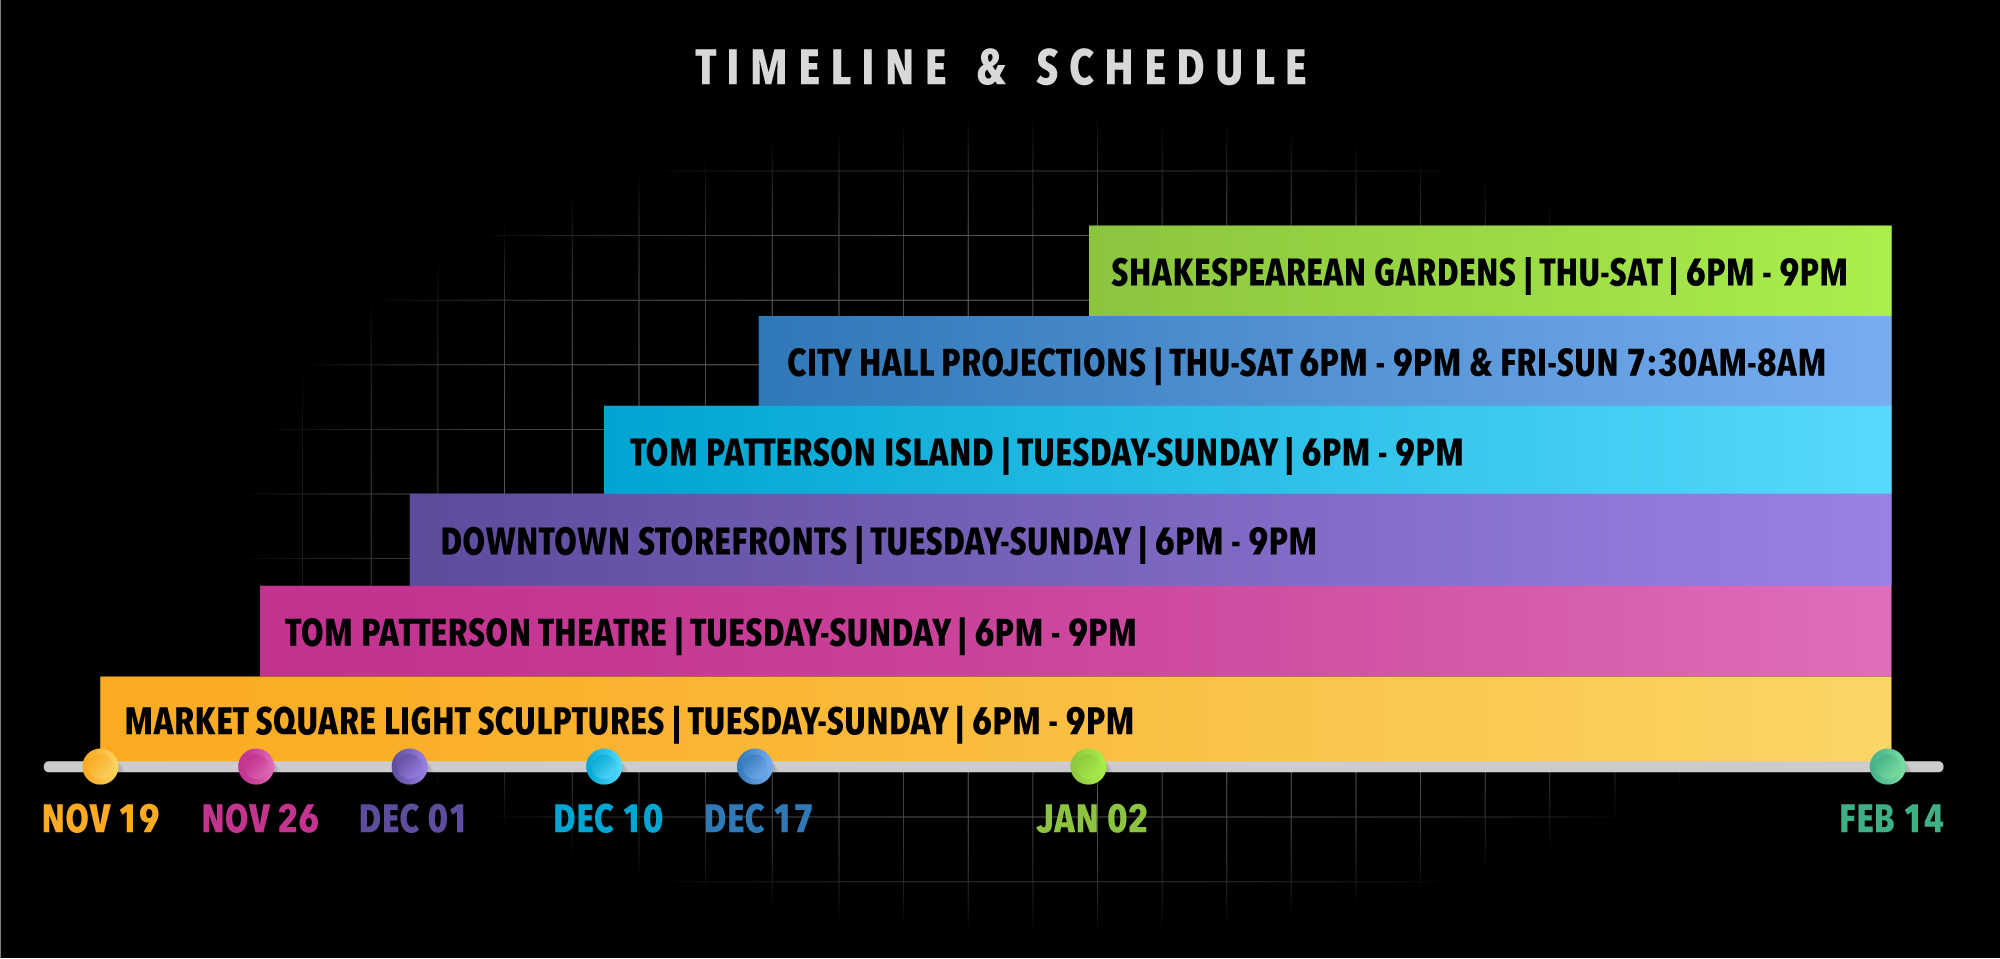 Timeline and Schedule